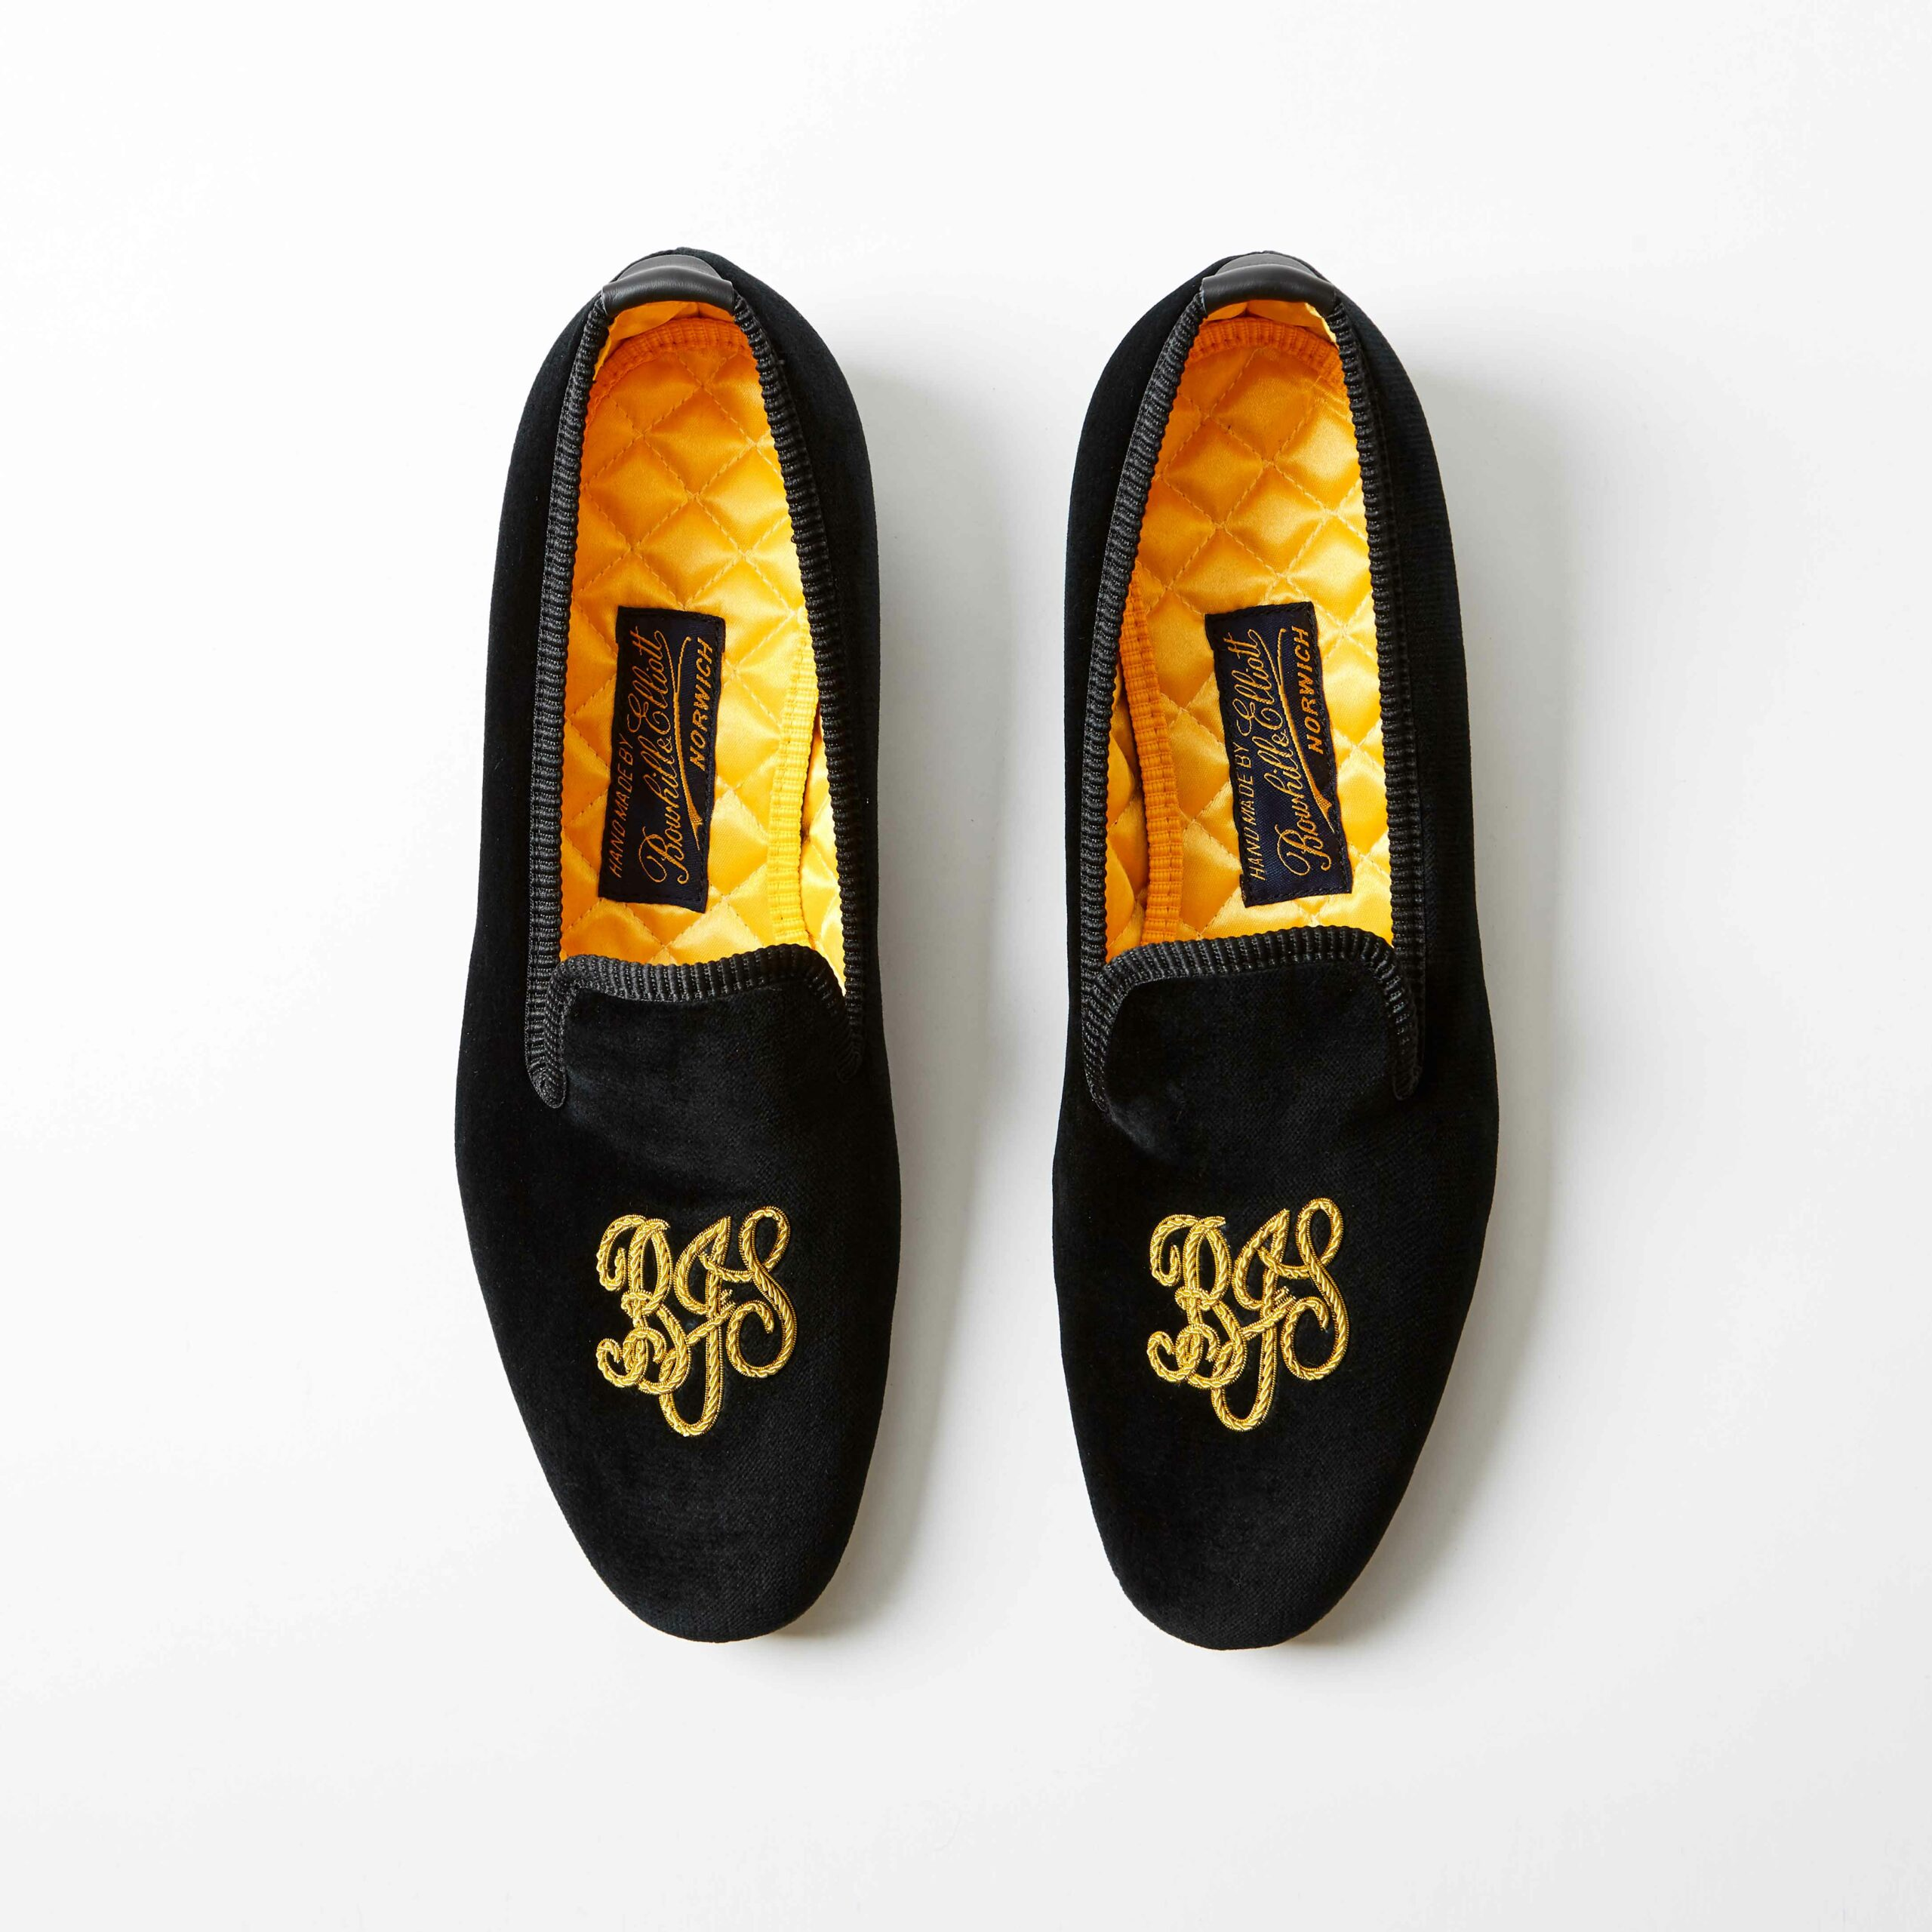 Personalised Embroidered Slippers 4